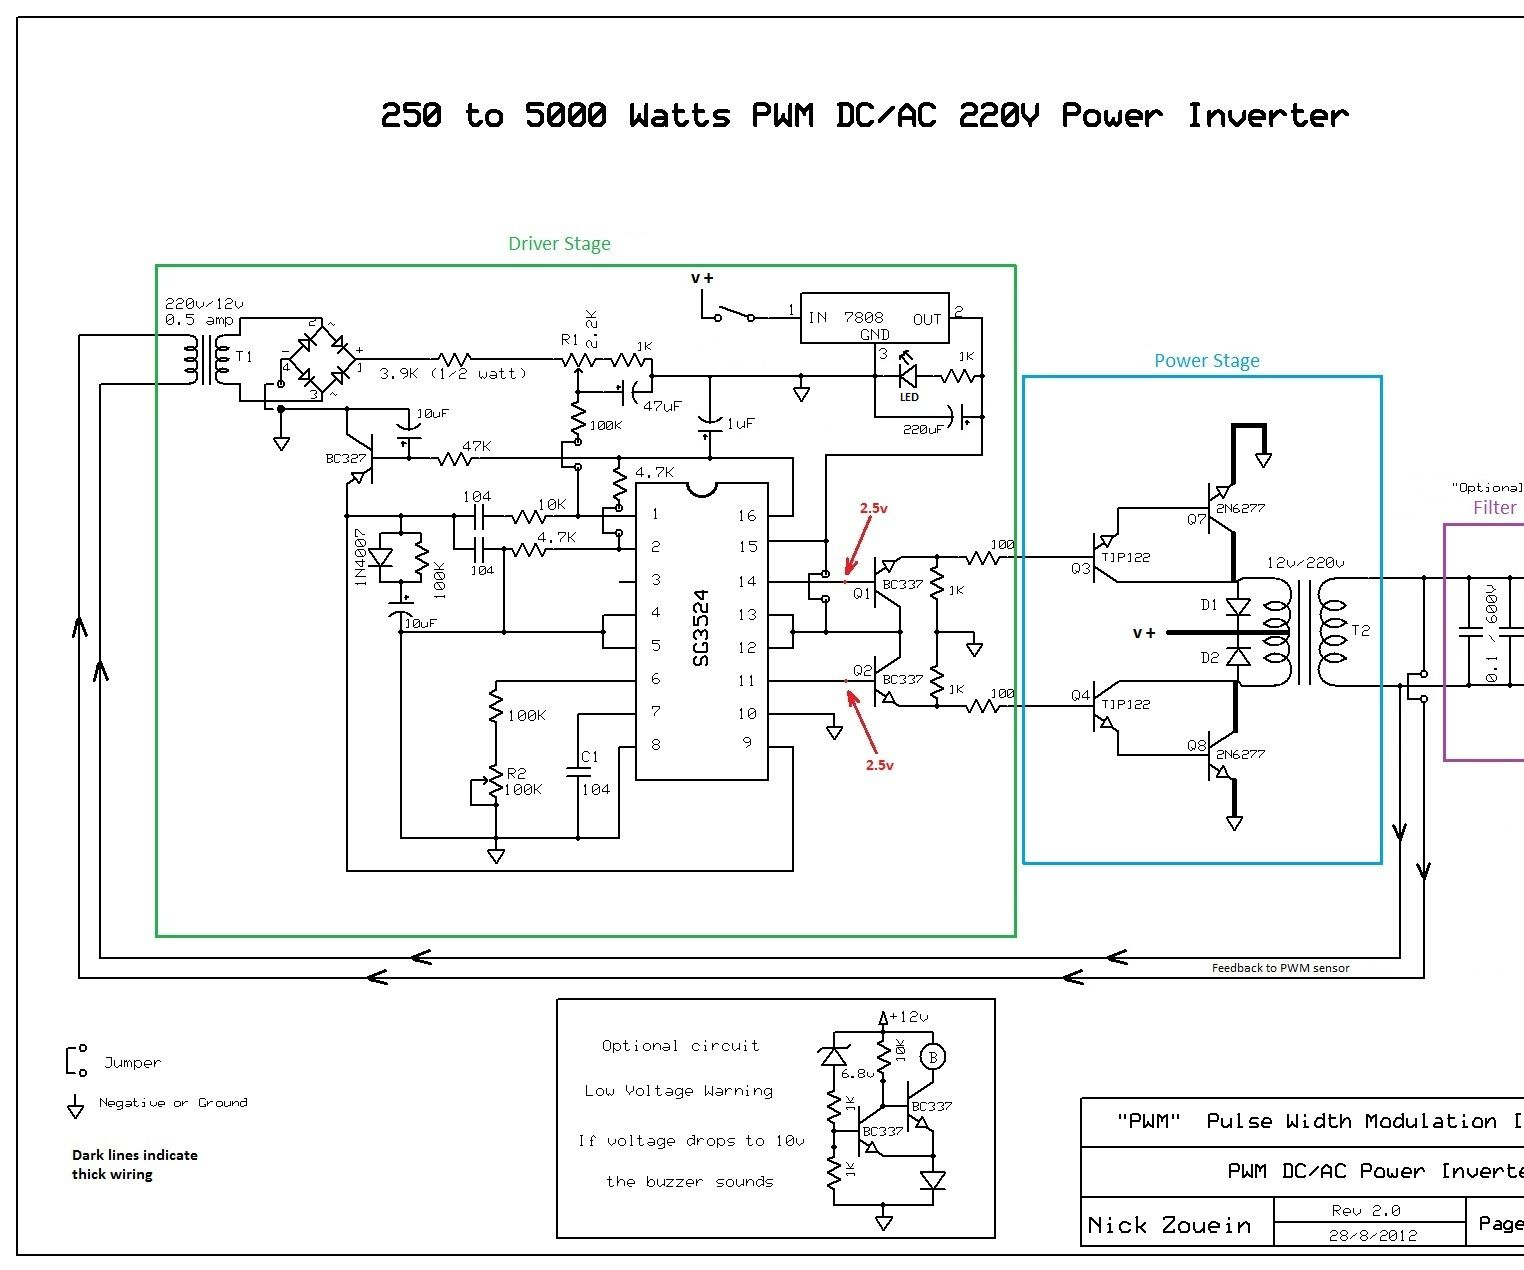 gmc c5500 fuse box diagram wiring library250 to 5000 watts pwm dc ac 220v power inverter [ 1524 x 1270 Pixel ]